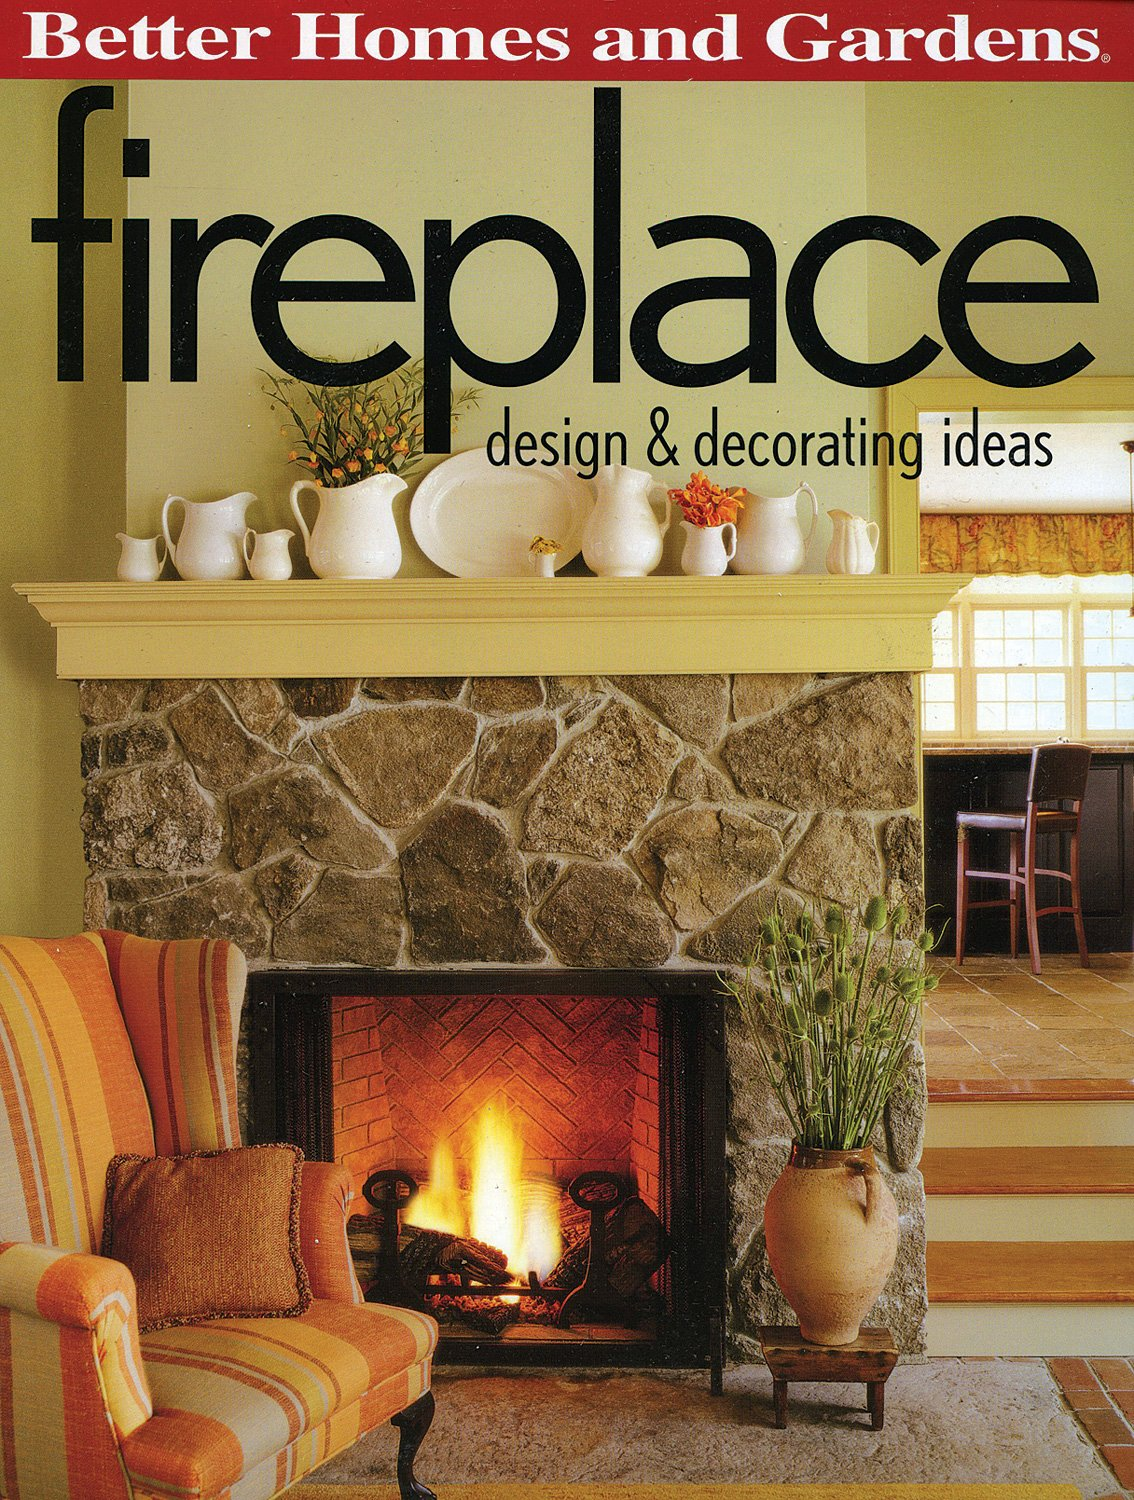 Fireplace Design Decorating Ideas Better Homes And Gardens Home